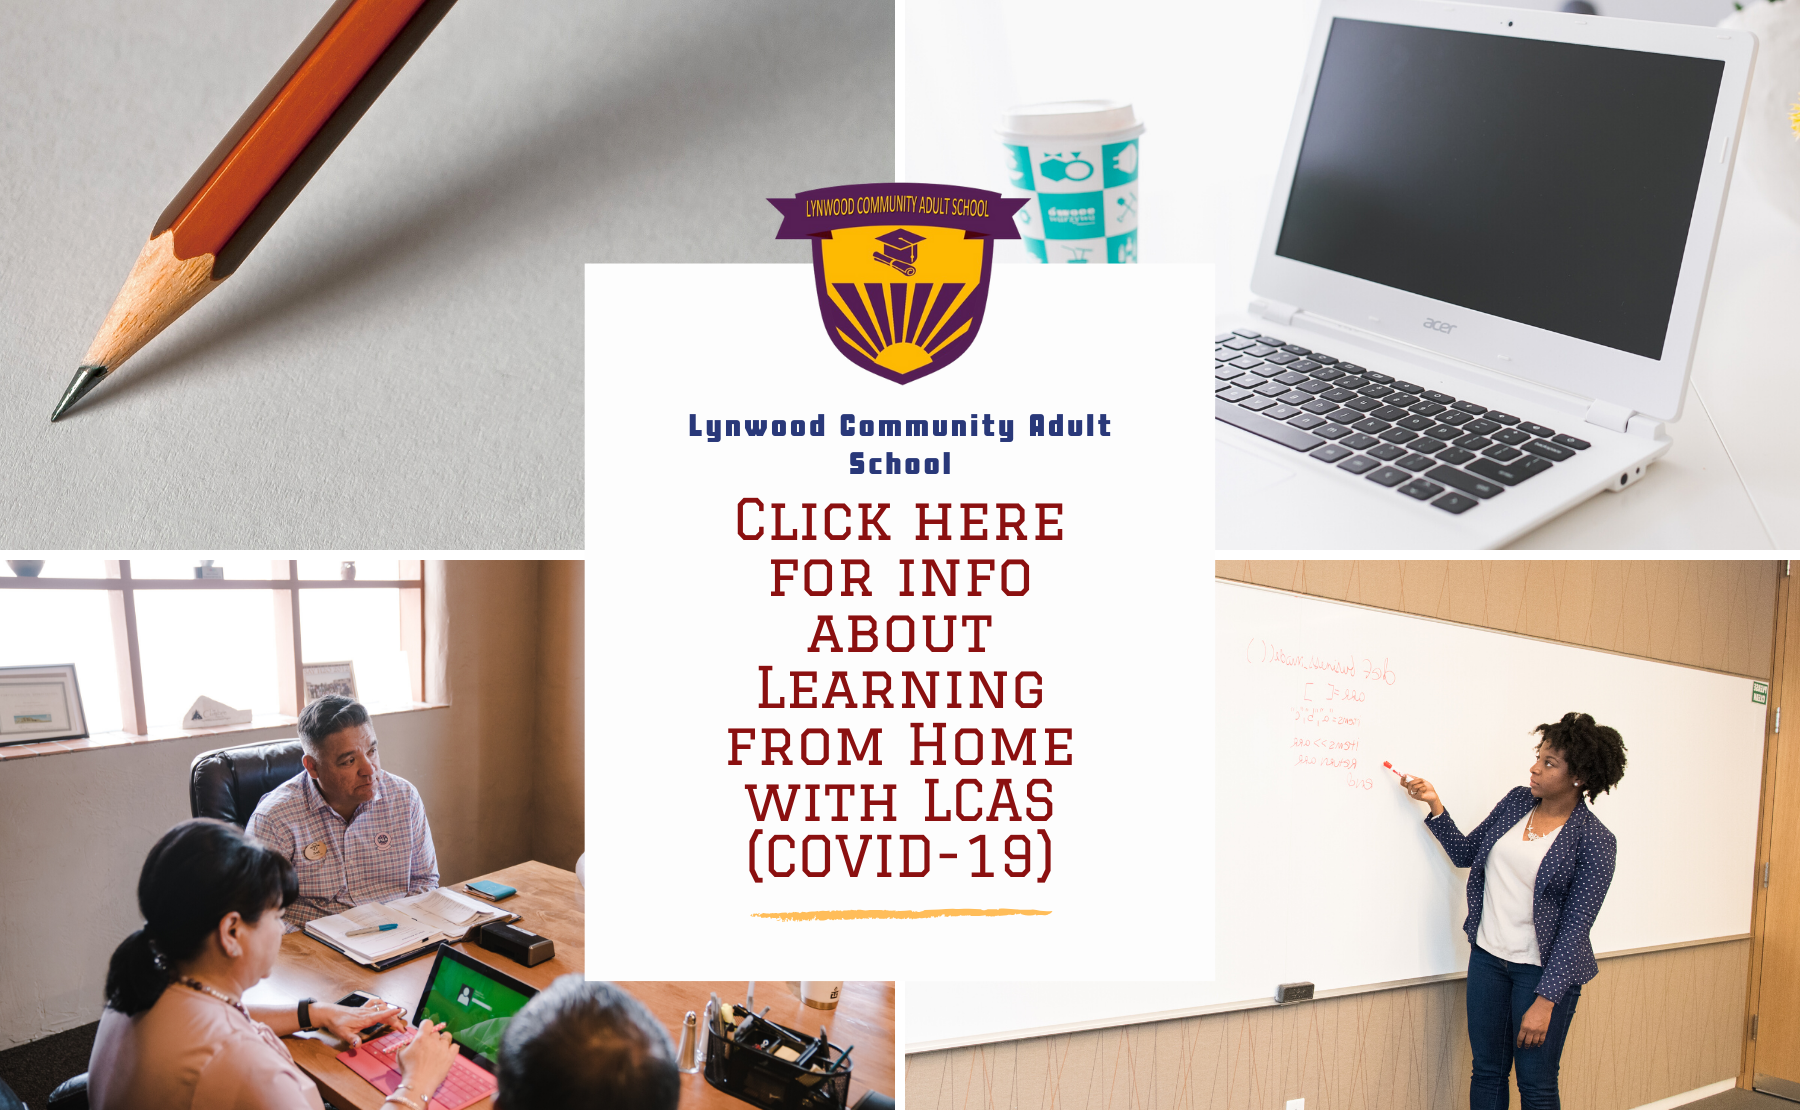 Click here for info about Learning from Home with LCAS (COVID-19)